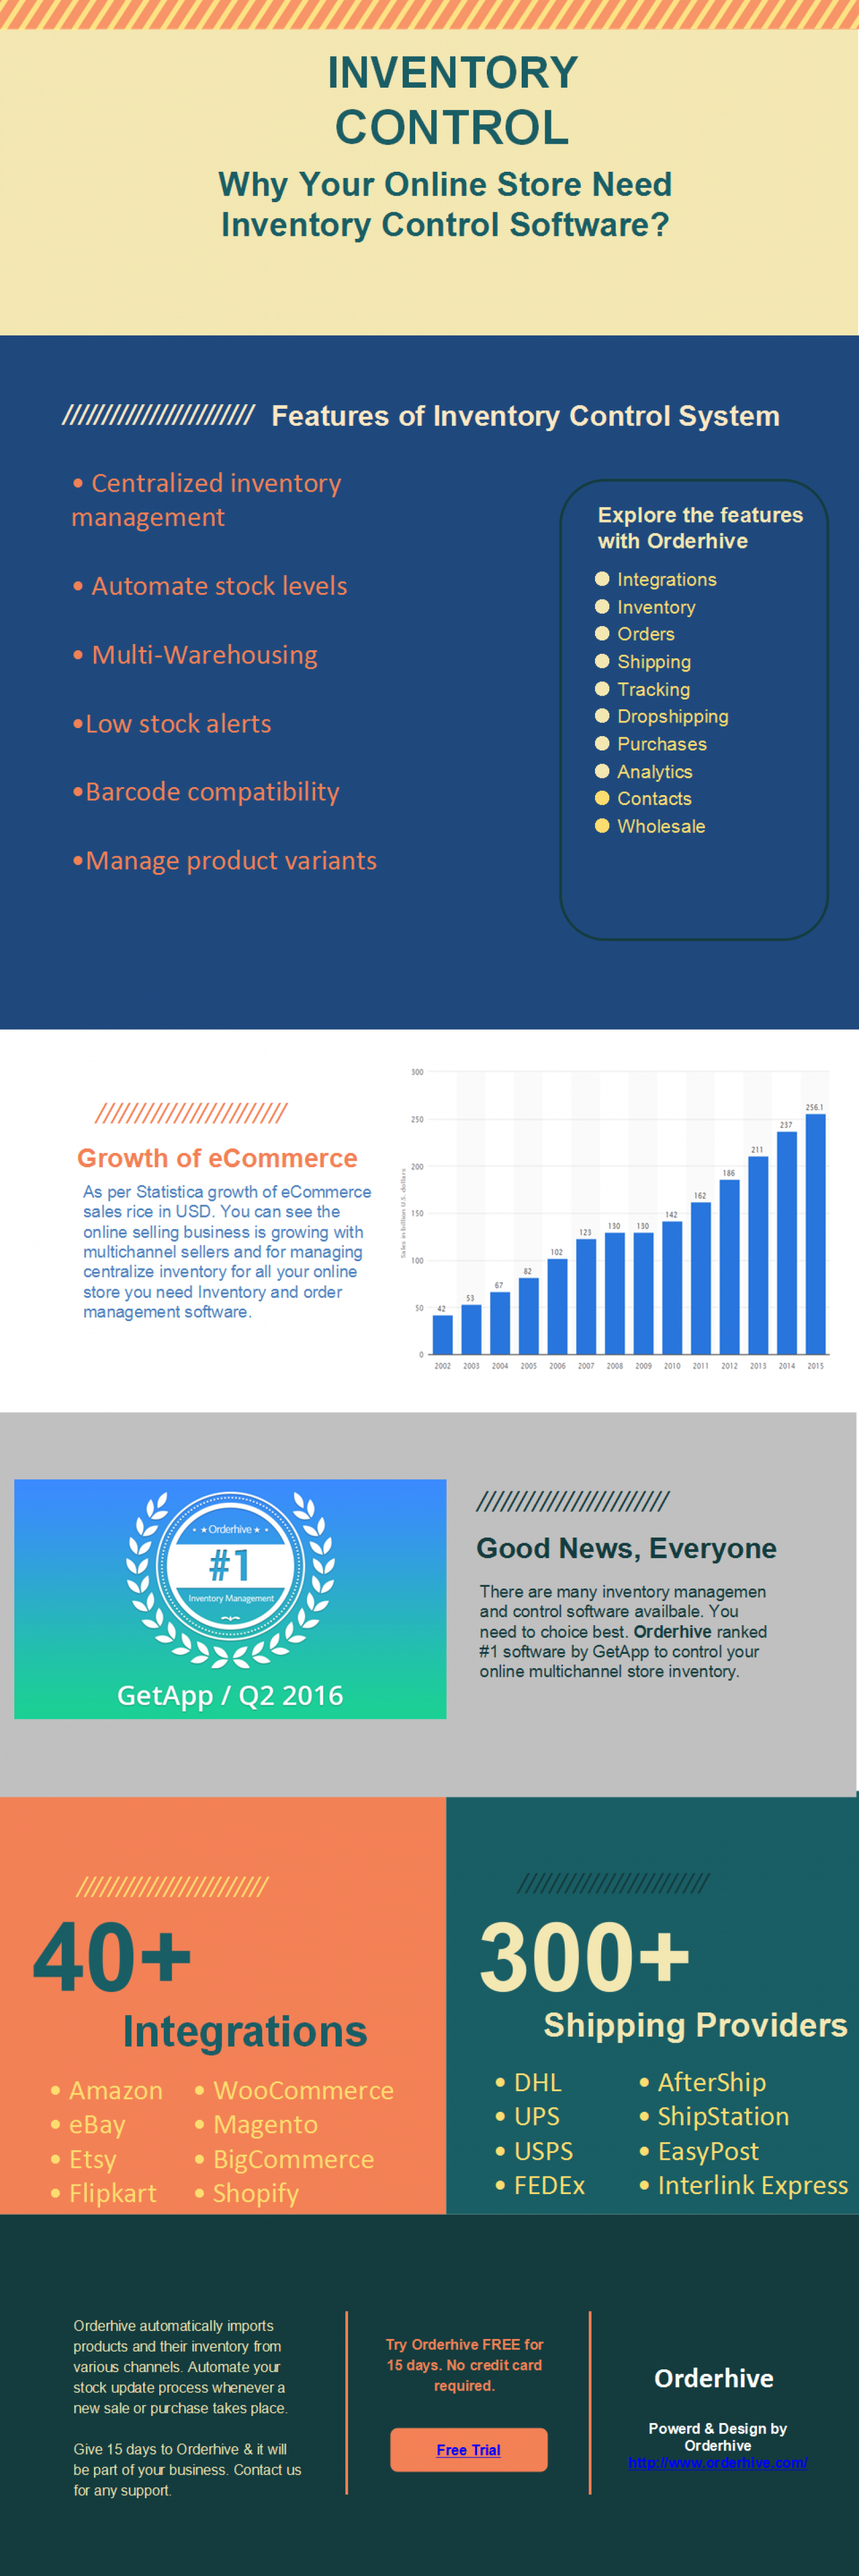 Why Your Online Store Need Inventory Control Software? Infographic